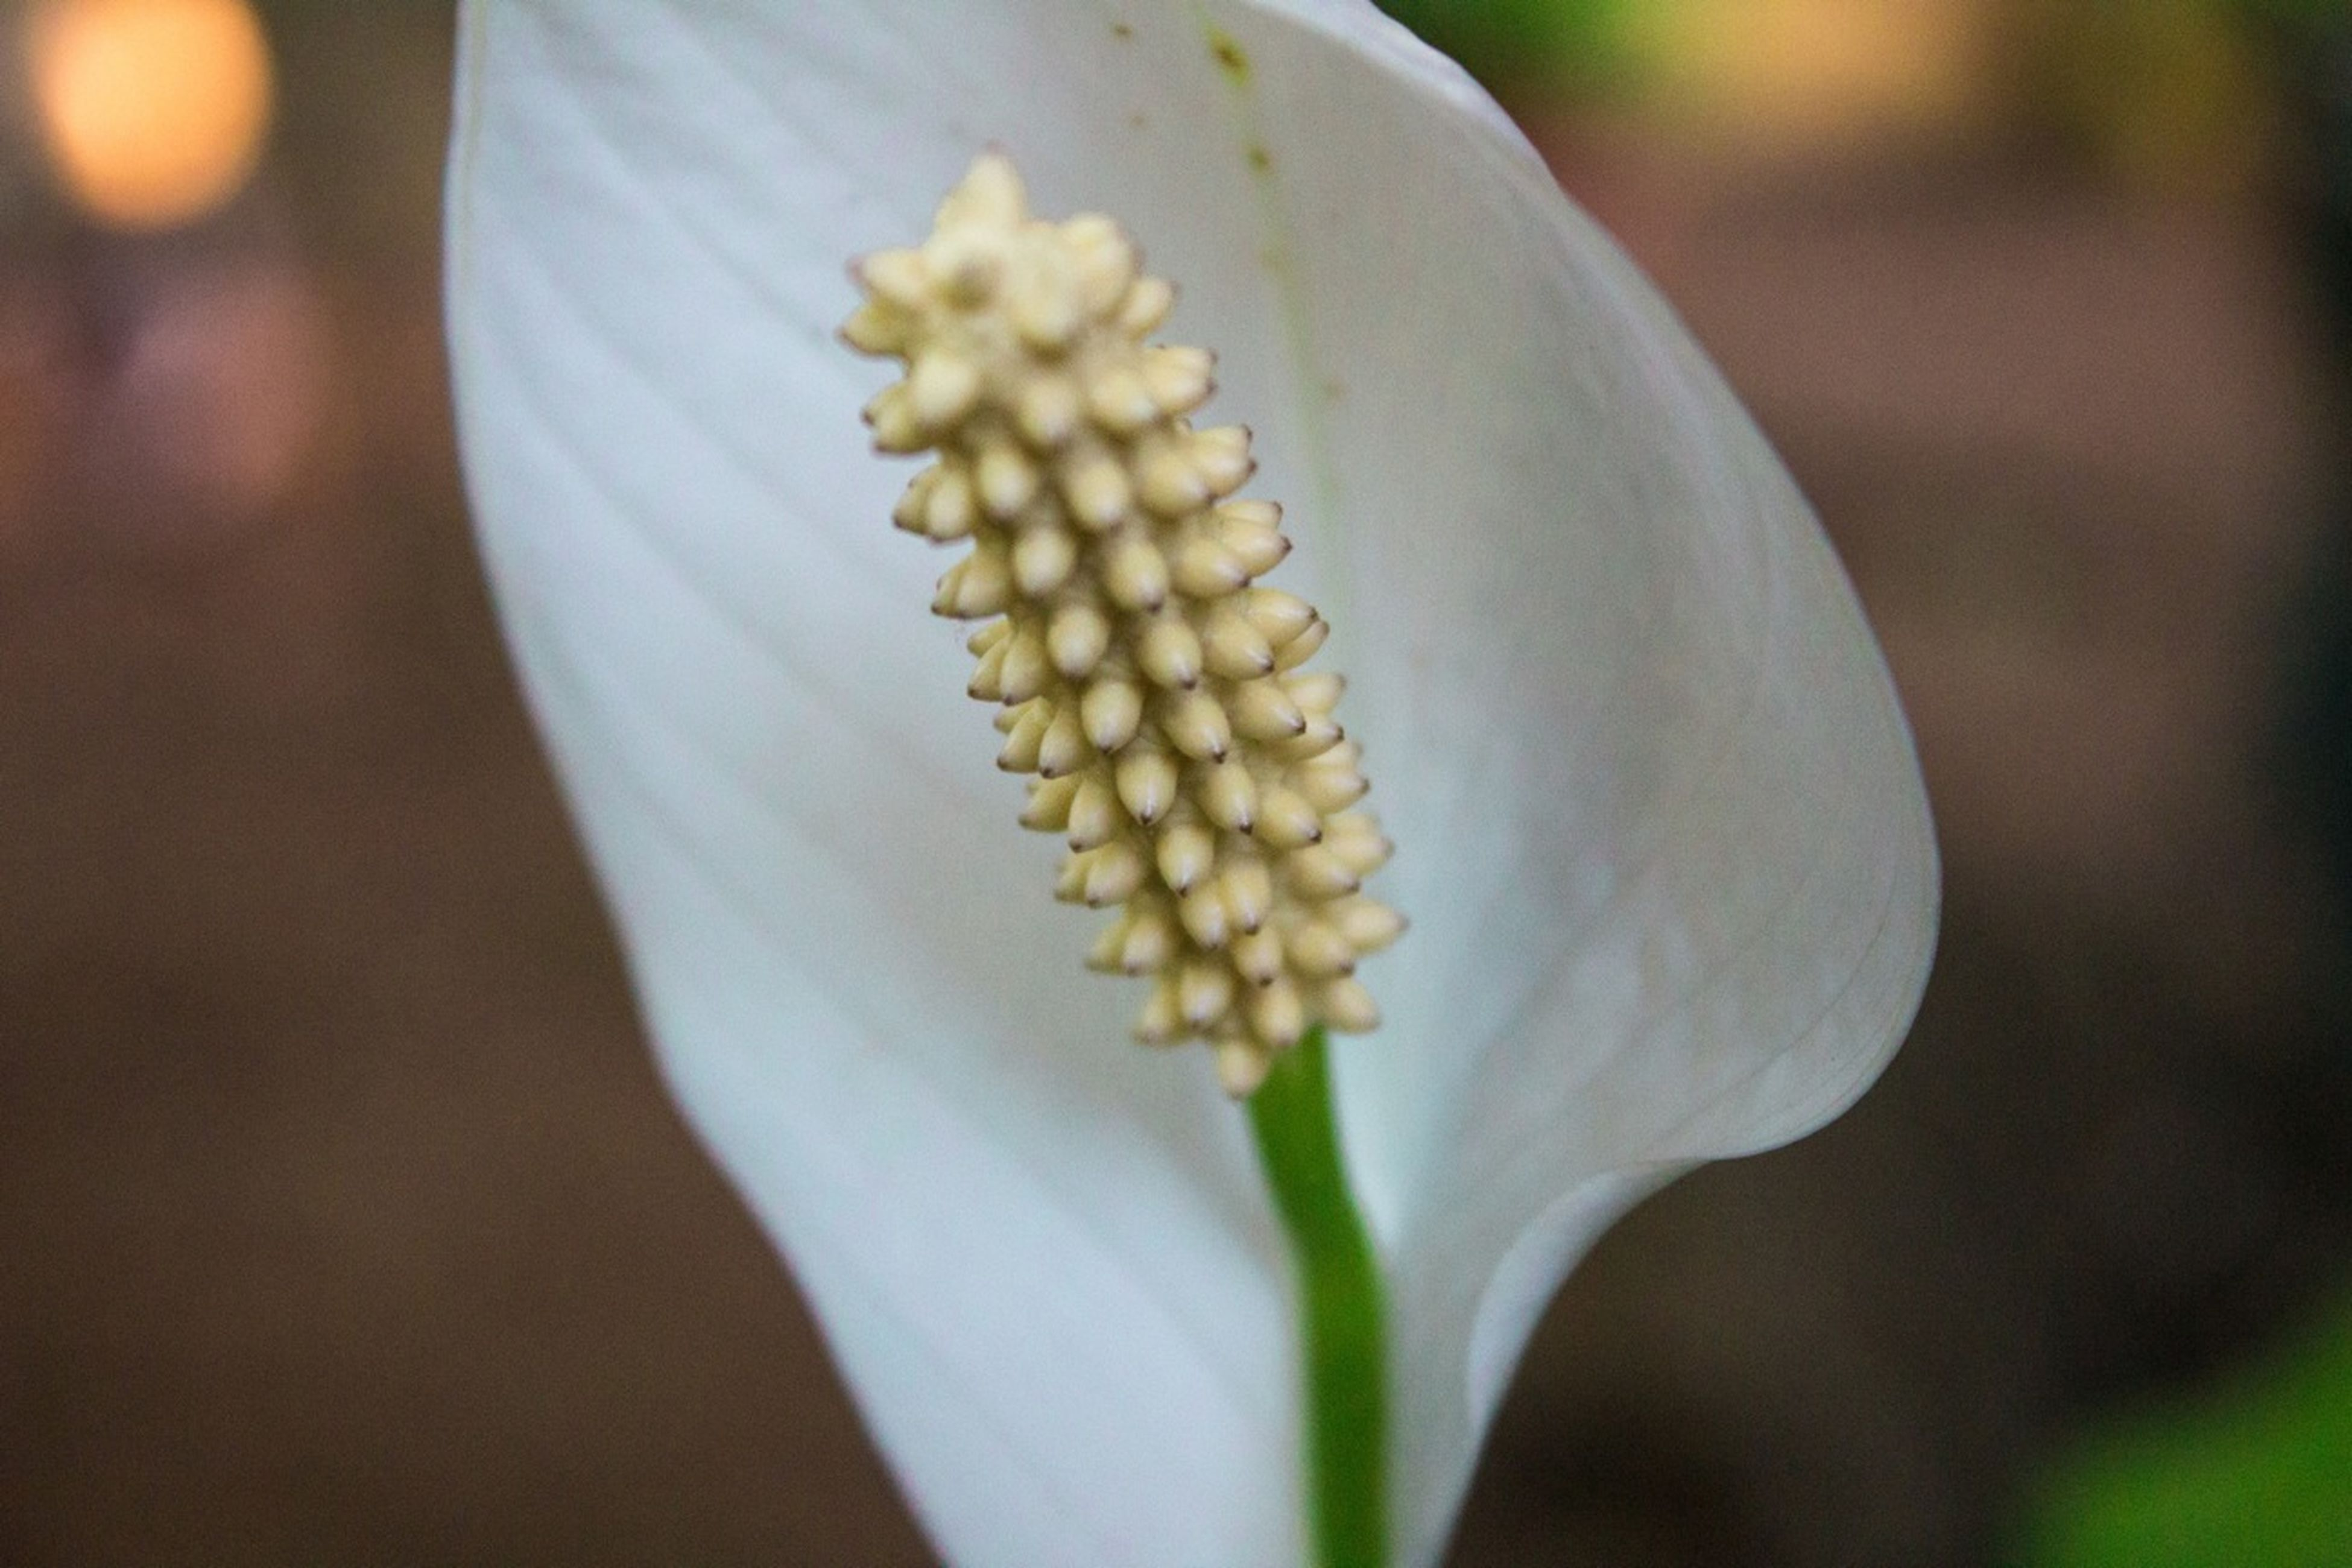 growth, freshness, close-up, flower, fragility, focus on foreground, beauty in nature, nature, white color, petal, plant, selective focus, flower head, bud, outdoors, day, no people, botany, blooming, stem